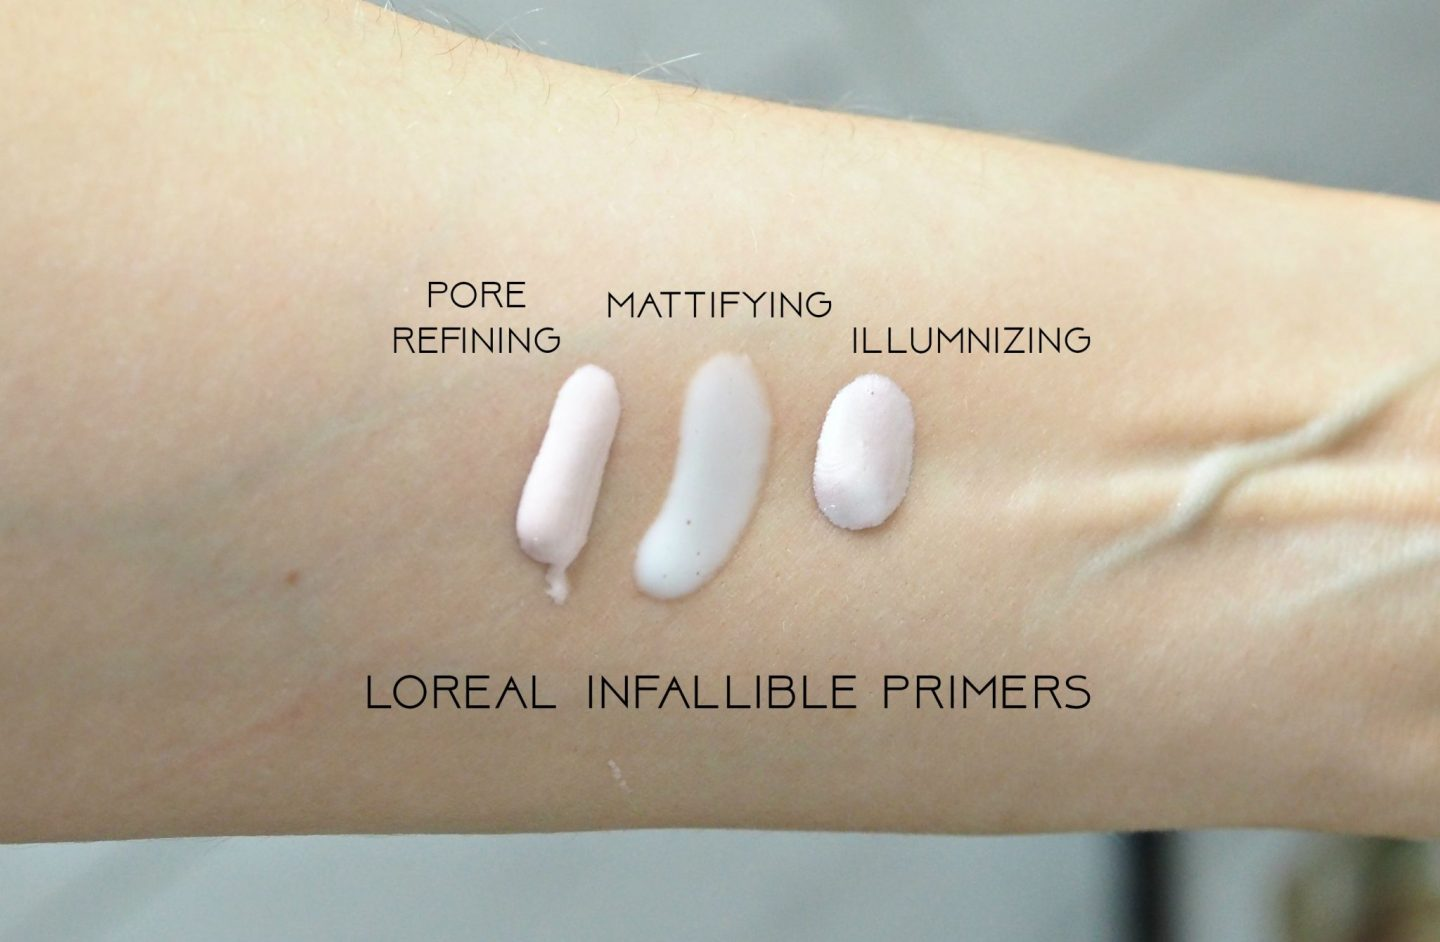 L'Oreal Infallible Mattifying, Illuminizing and Pore Refining Primers swatches